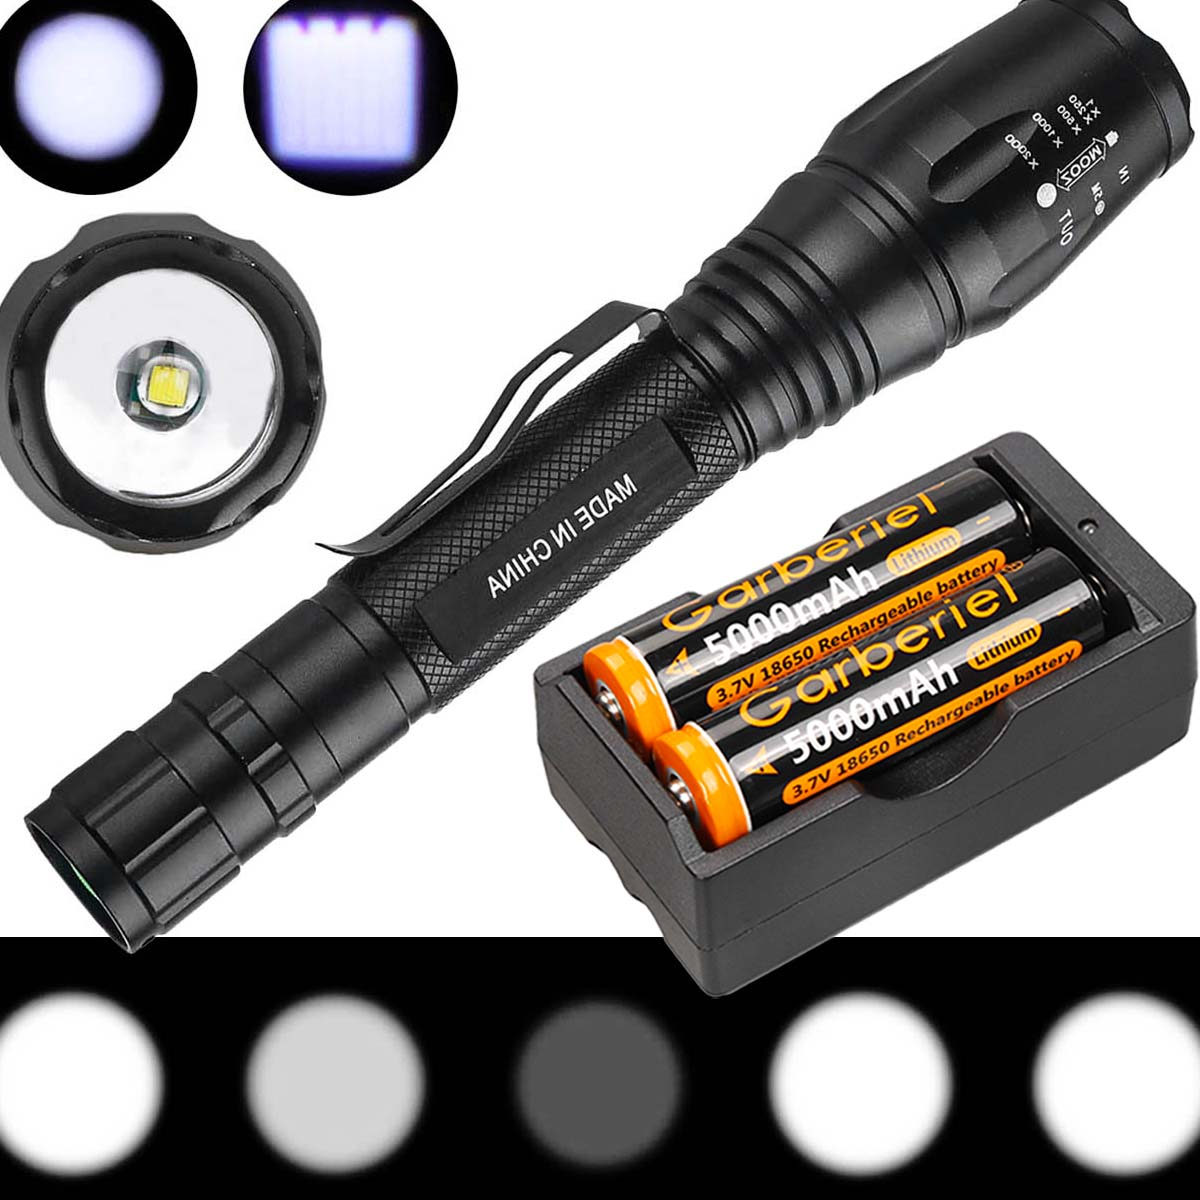 2* Tactical Ultrafire Flashlight T6 High Power 5 Modes Zoom Focus 18650 Battery